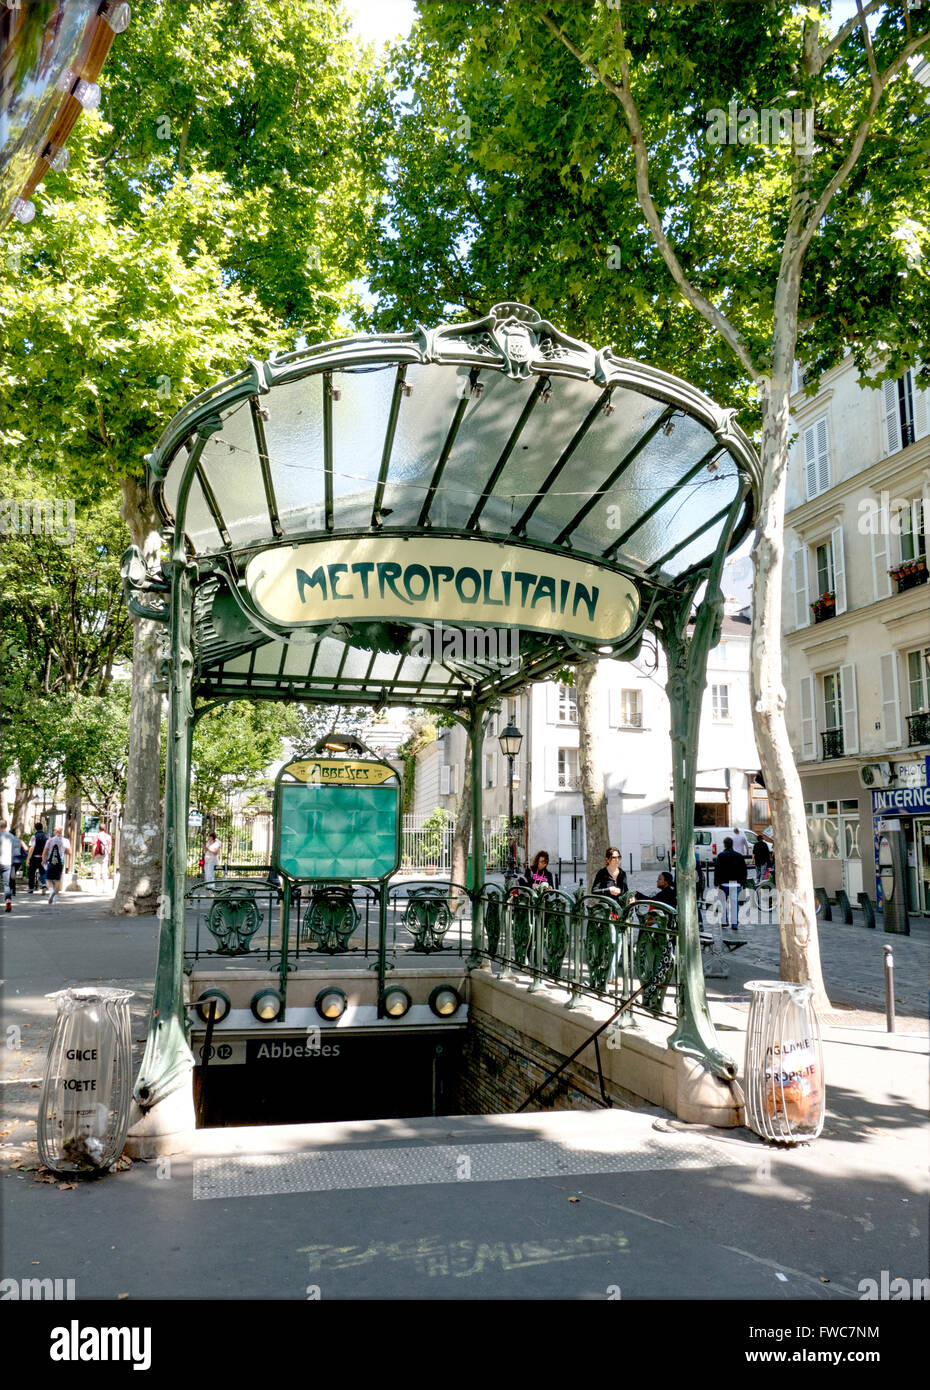 Paris Art Nouveau Metro Stock Photos & Paris Art Nouveau Metro Stock ...